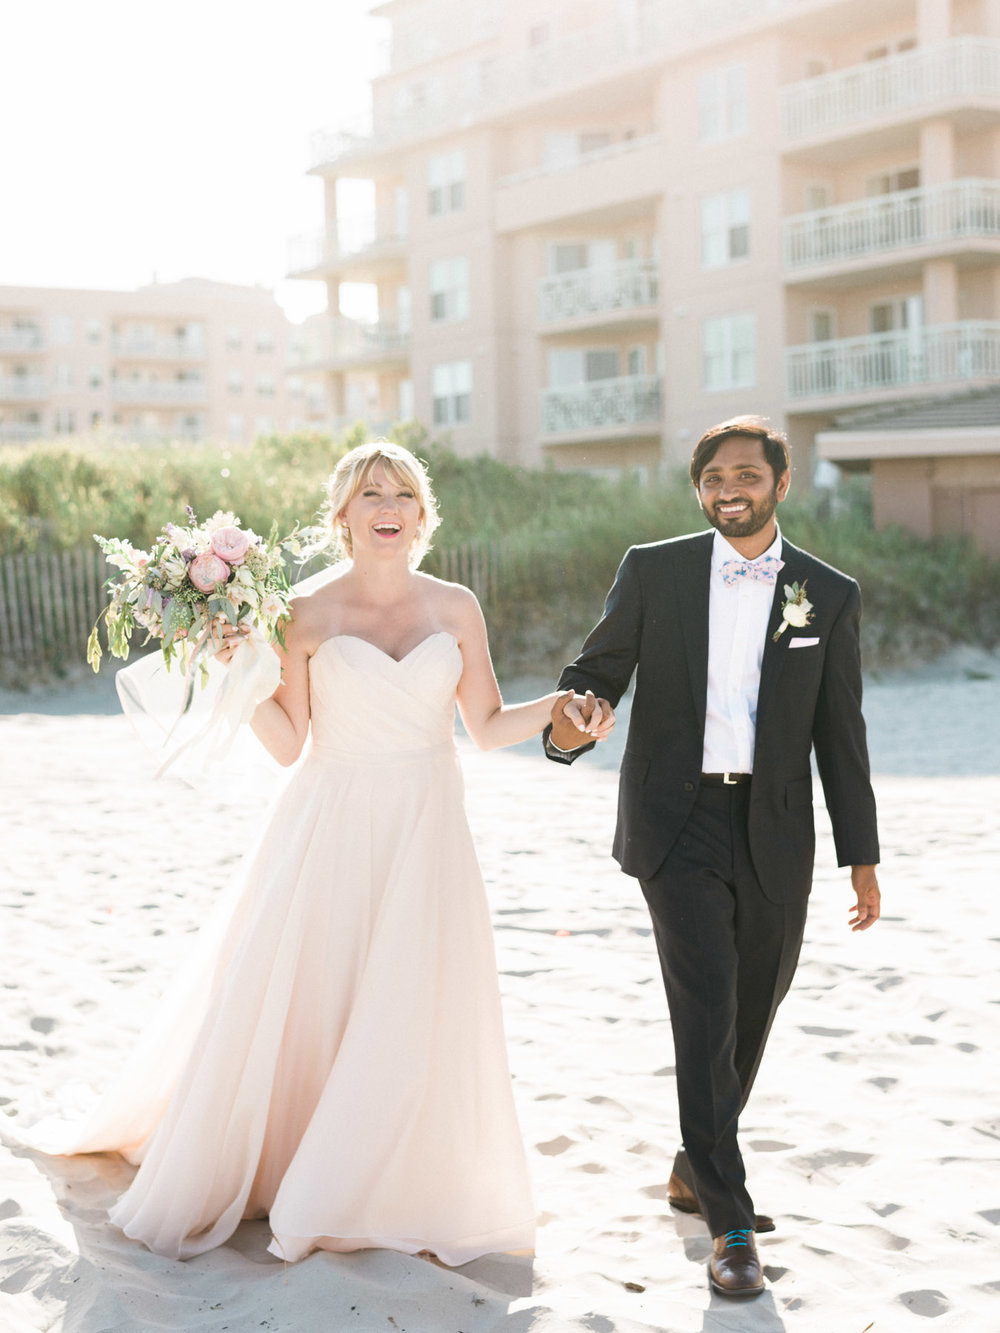 NJ Wedding Photographer in Cape May, NJ at Hotel Icona